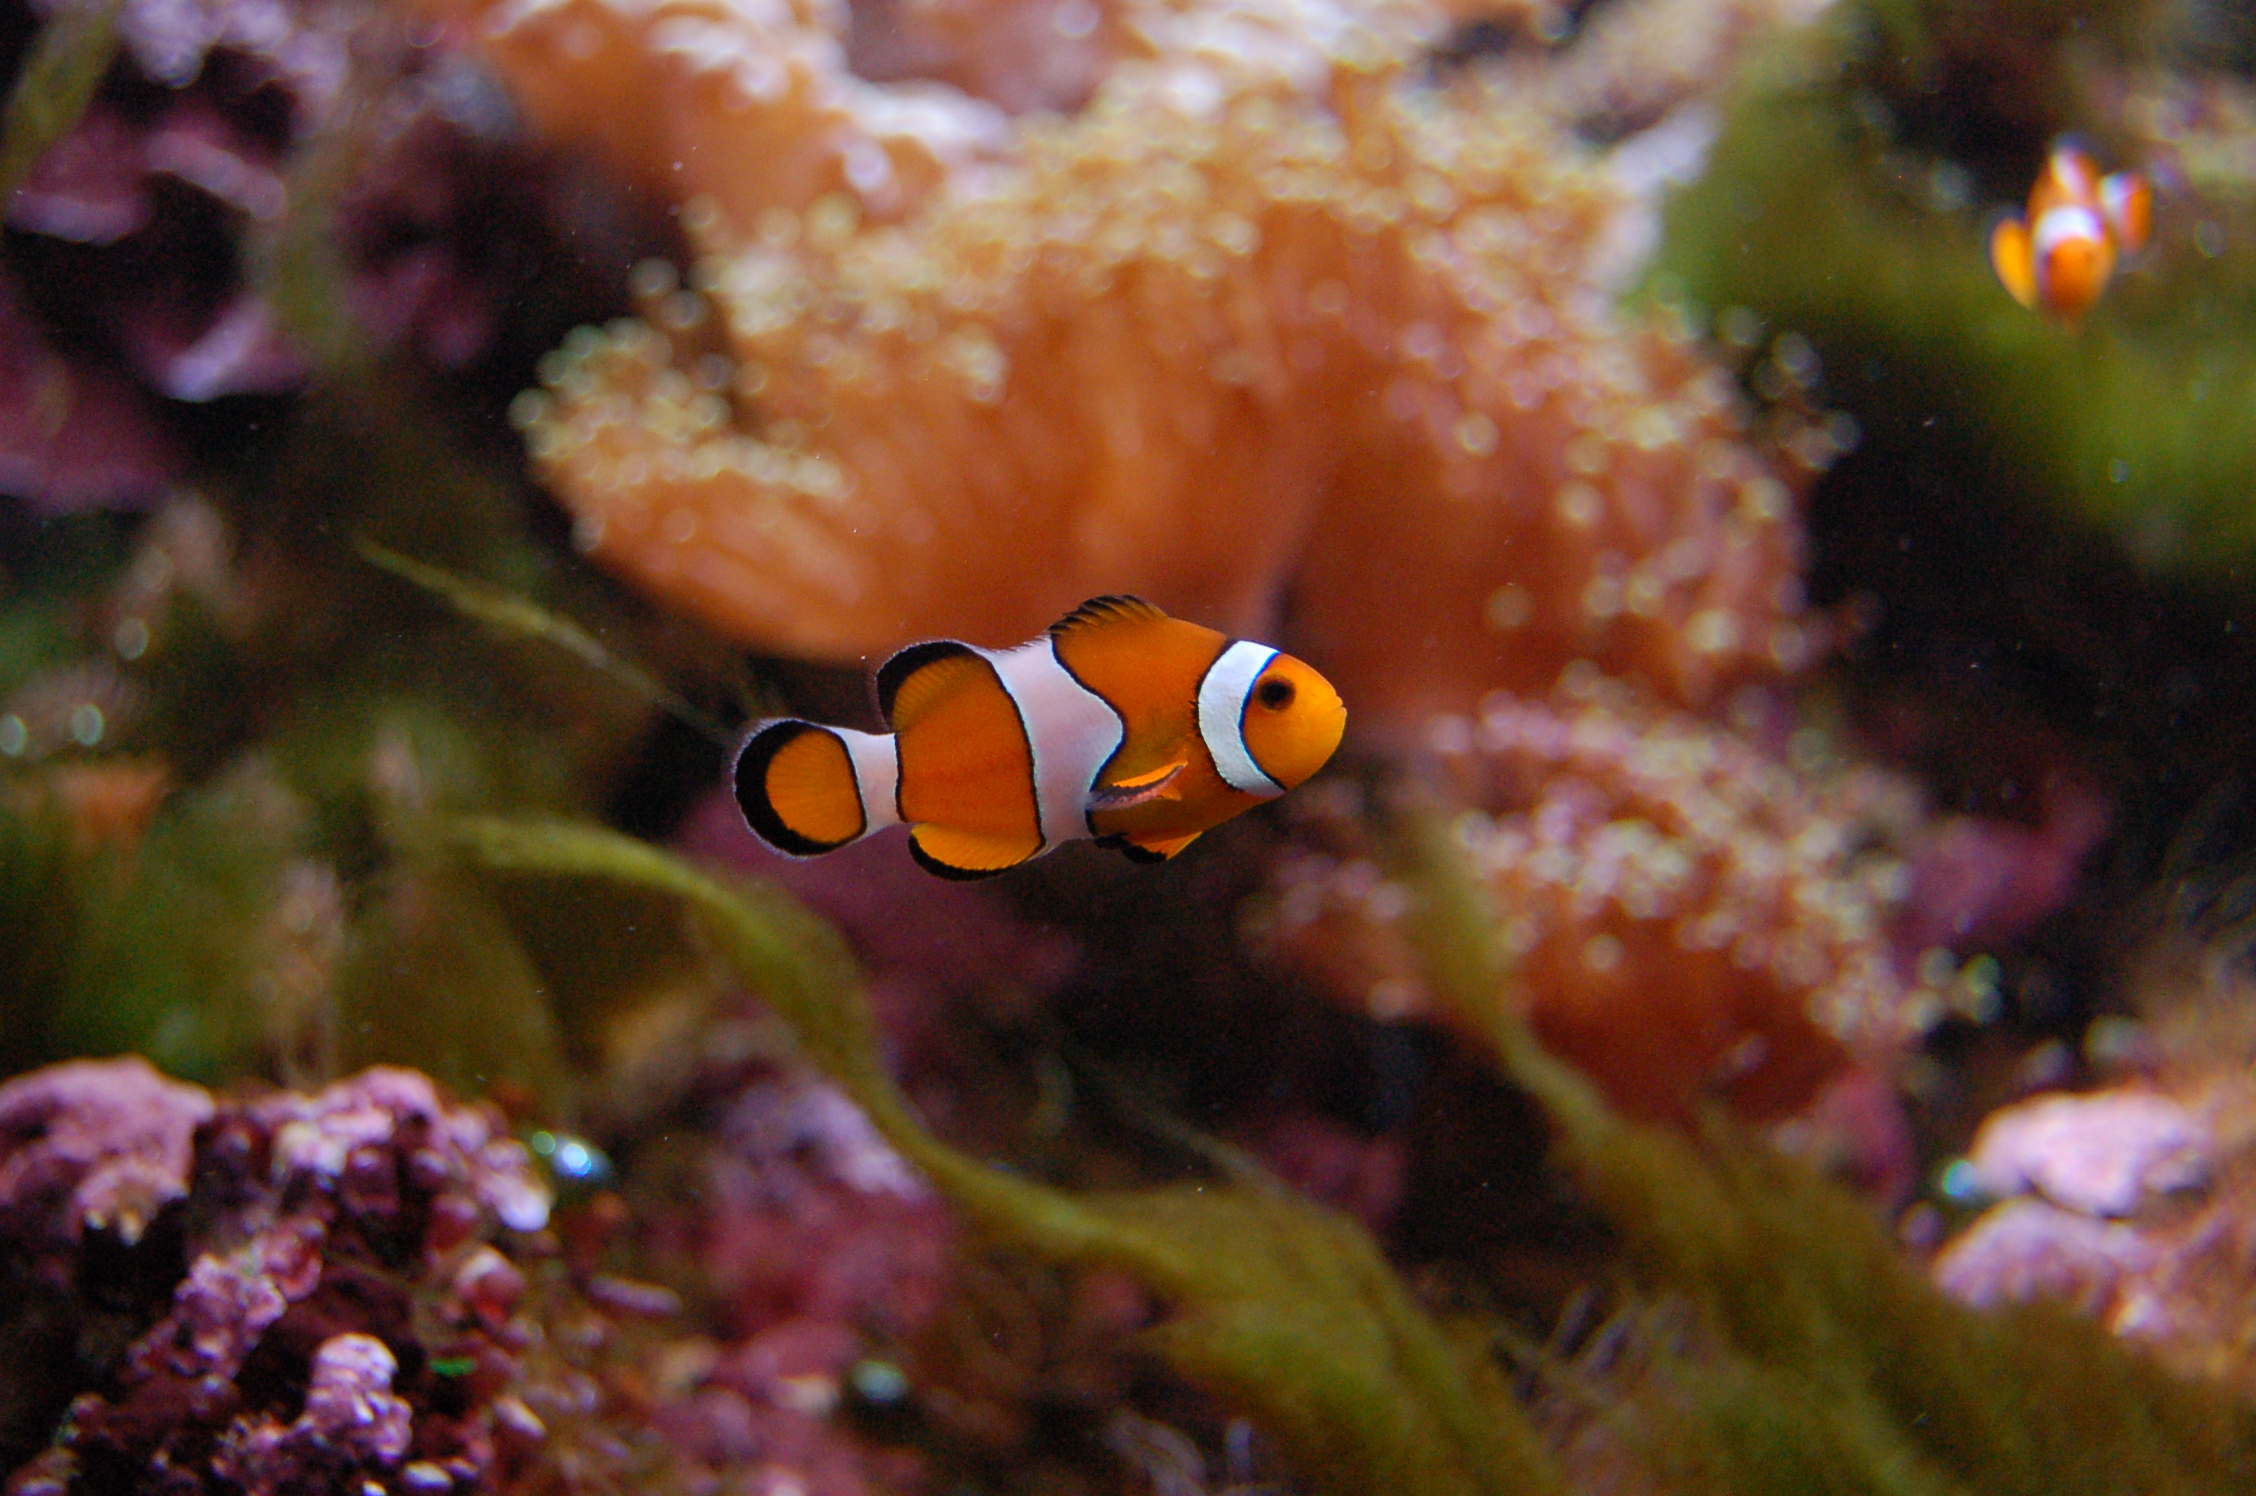 File aquarium tropical du palais de la porte dor e poisson clown2 jpg wikimedia commons - Aquarium tropical de la porte doree ...